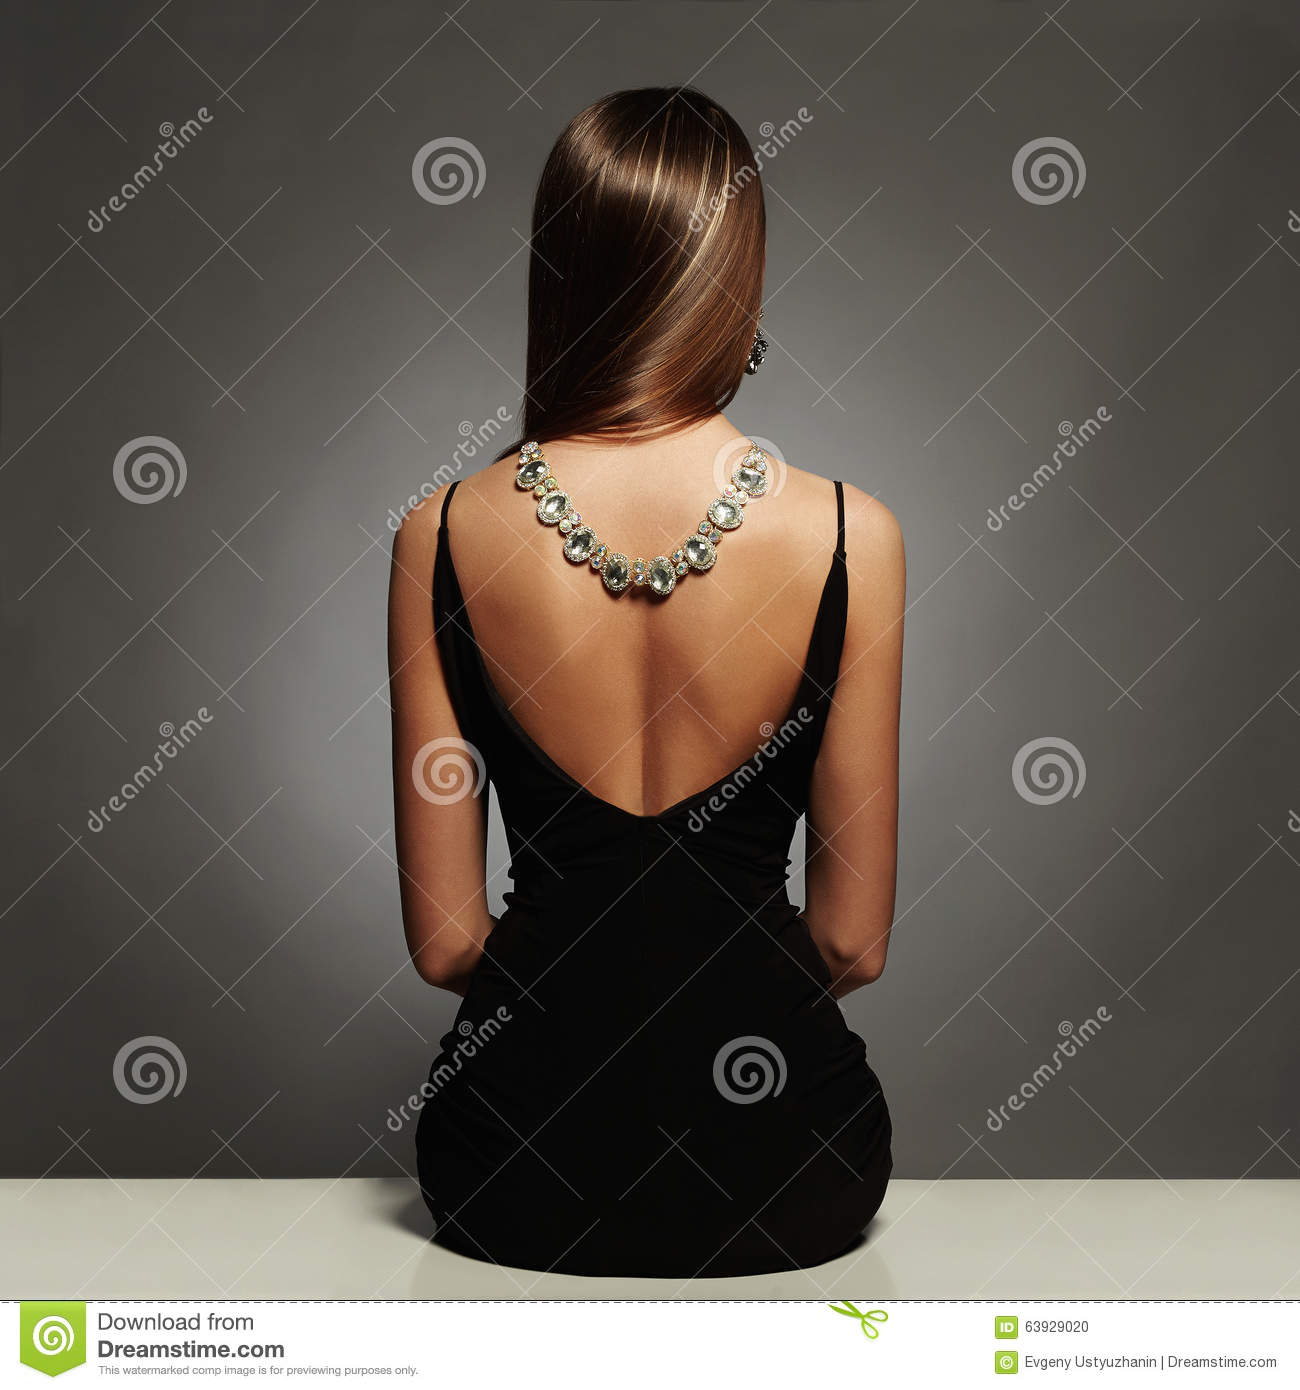 Download Beautiful Back Of Young Woman In A Black Dress. Luxury. Beauty Brunette Sitting Girl Girl With A Necklace On Her Back Stock Photo - Image of elegant, desire: 63929020